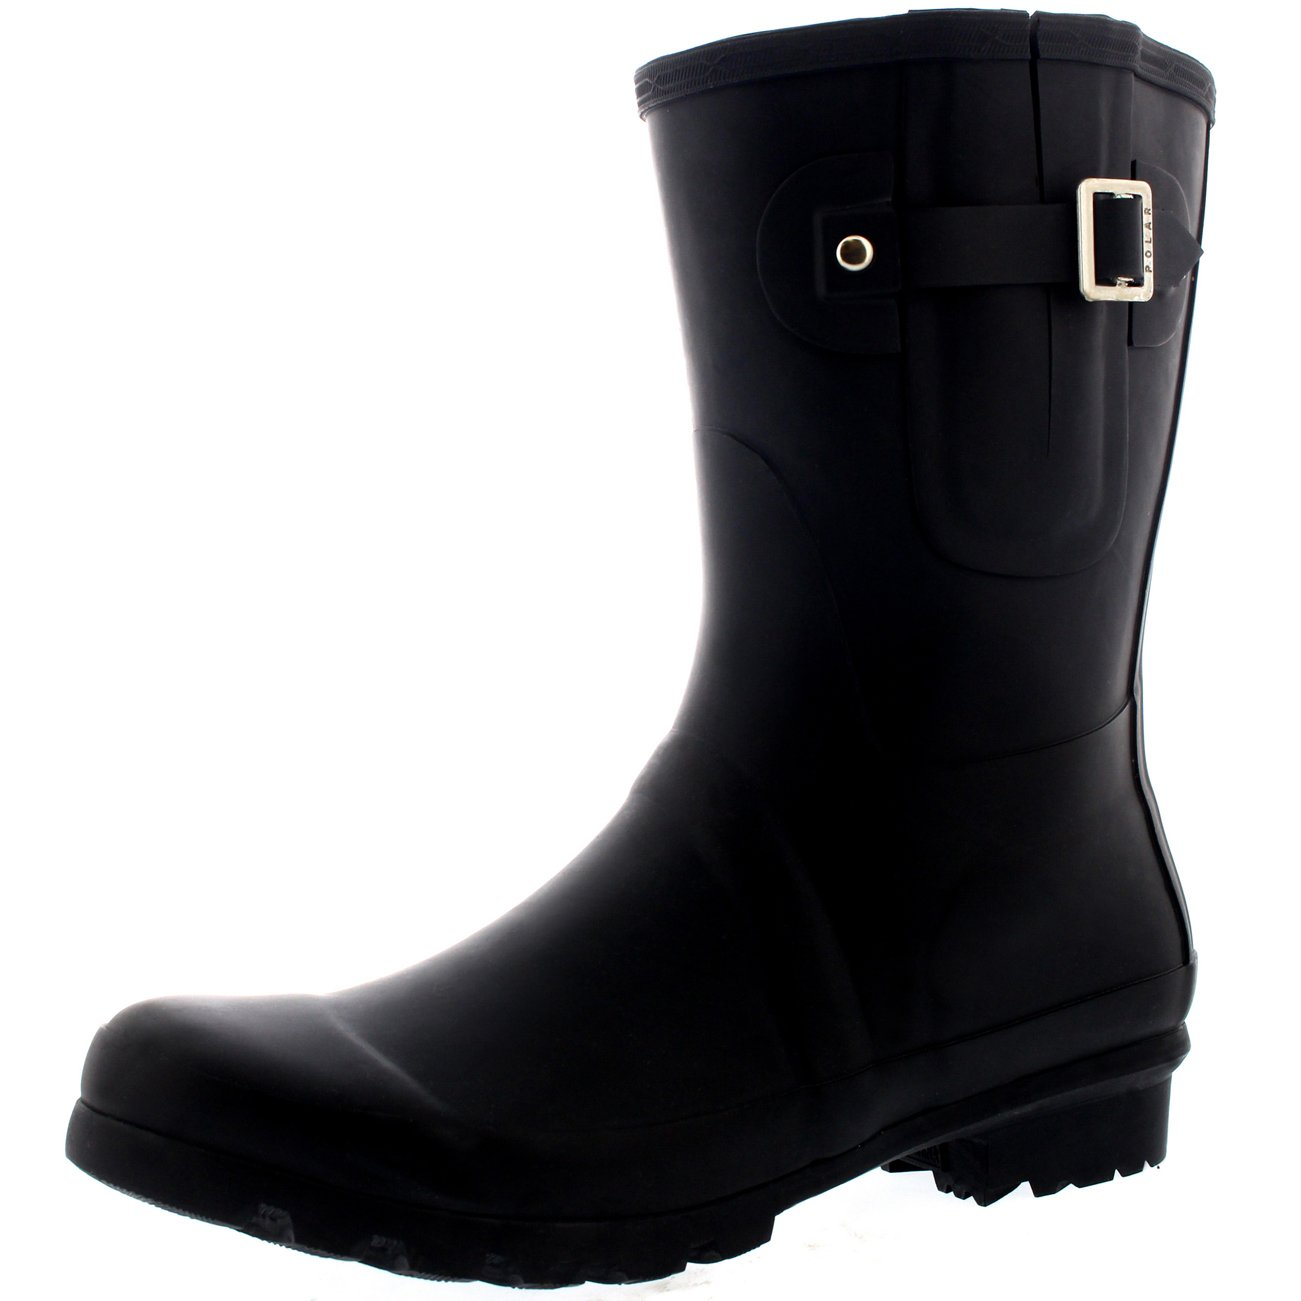 Polar Mens Adjustable Side Rubber Waterproof Rain Wellingtons Boots - Black - US13/EU46 - BL0232 by Polar Products (Image #1)